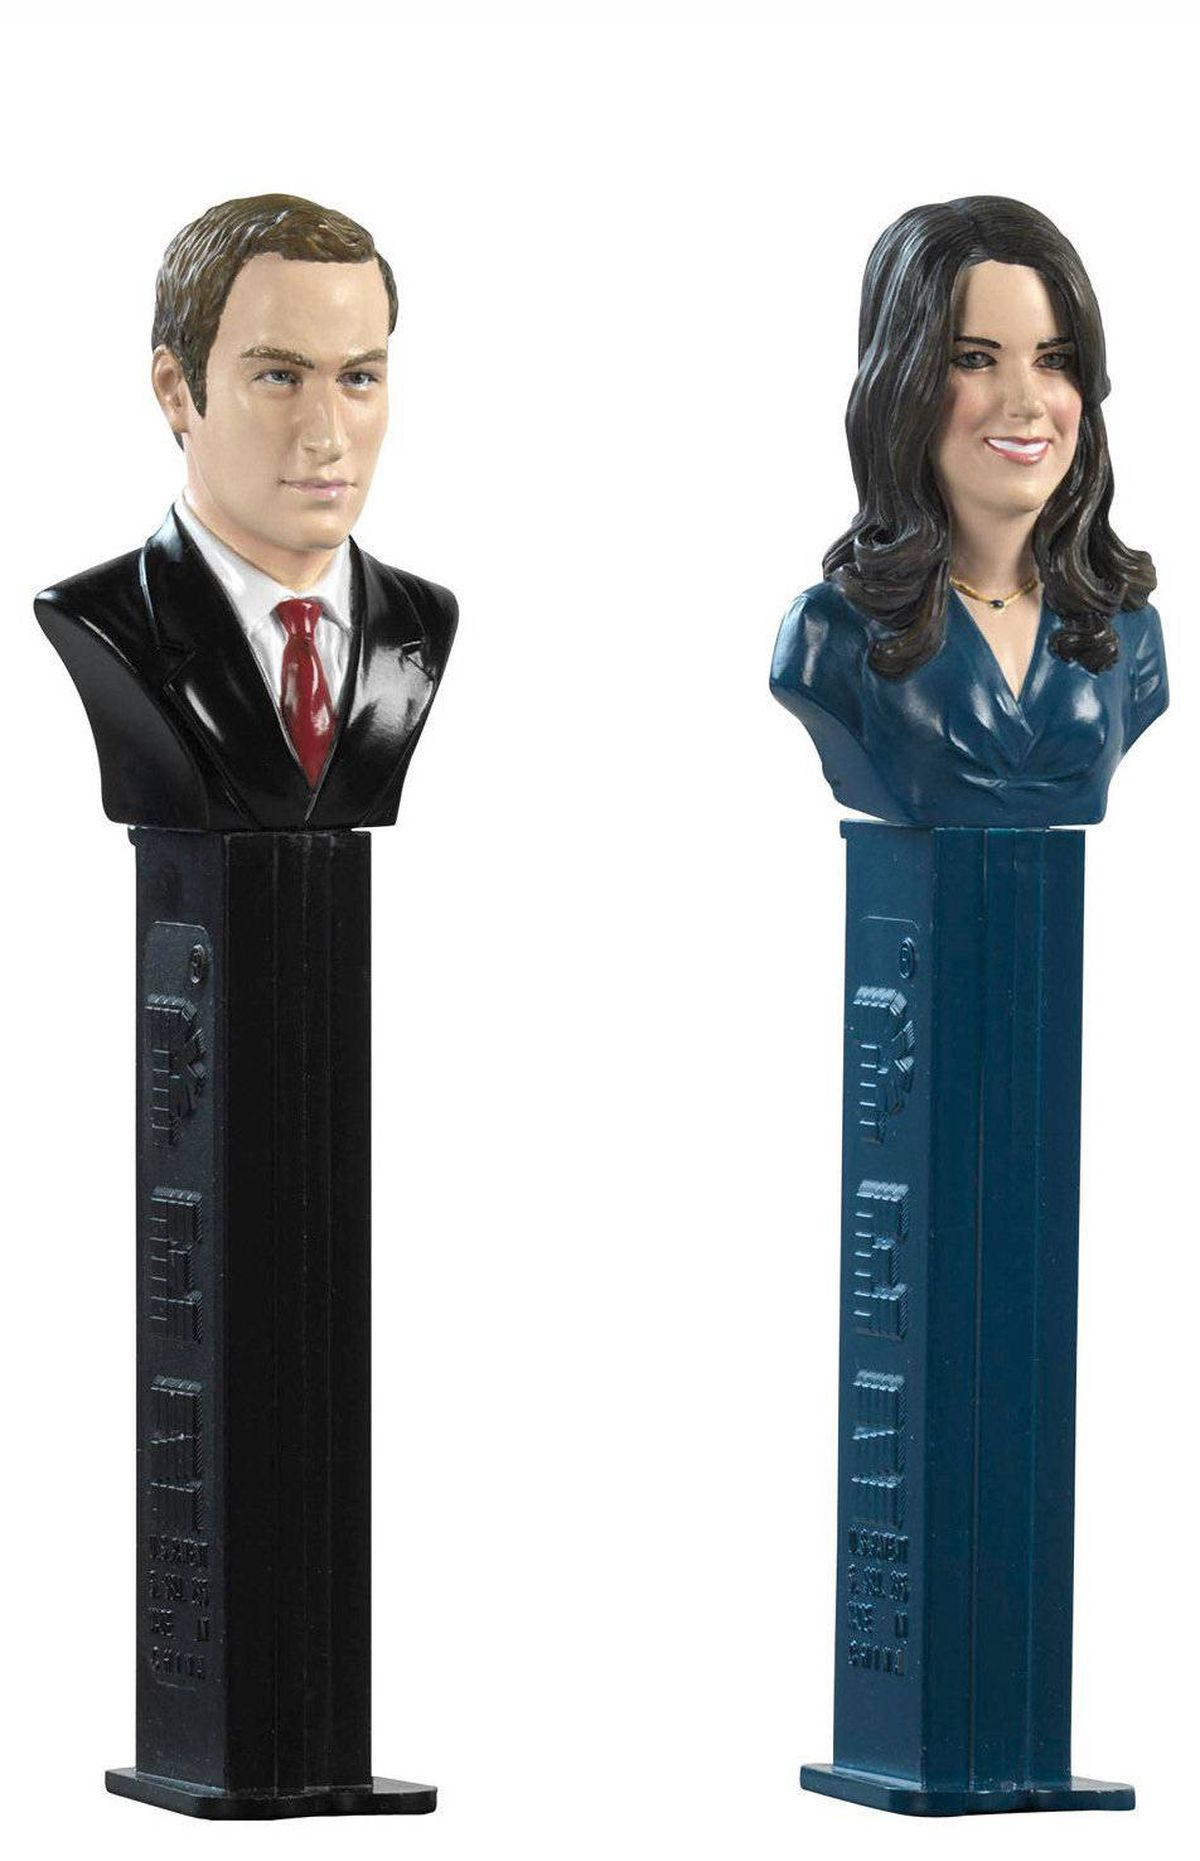 The PEZ were even better.